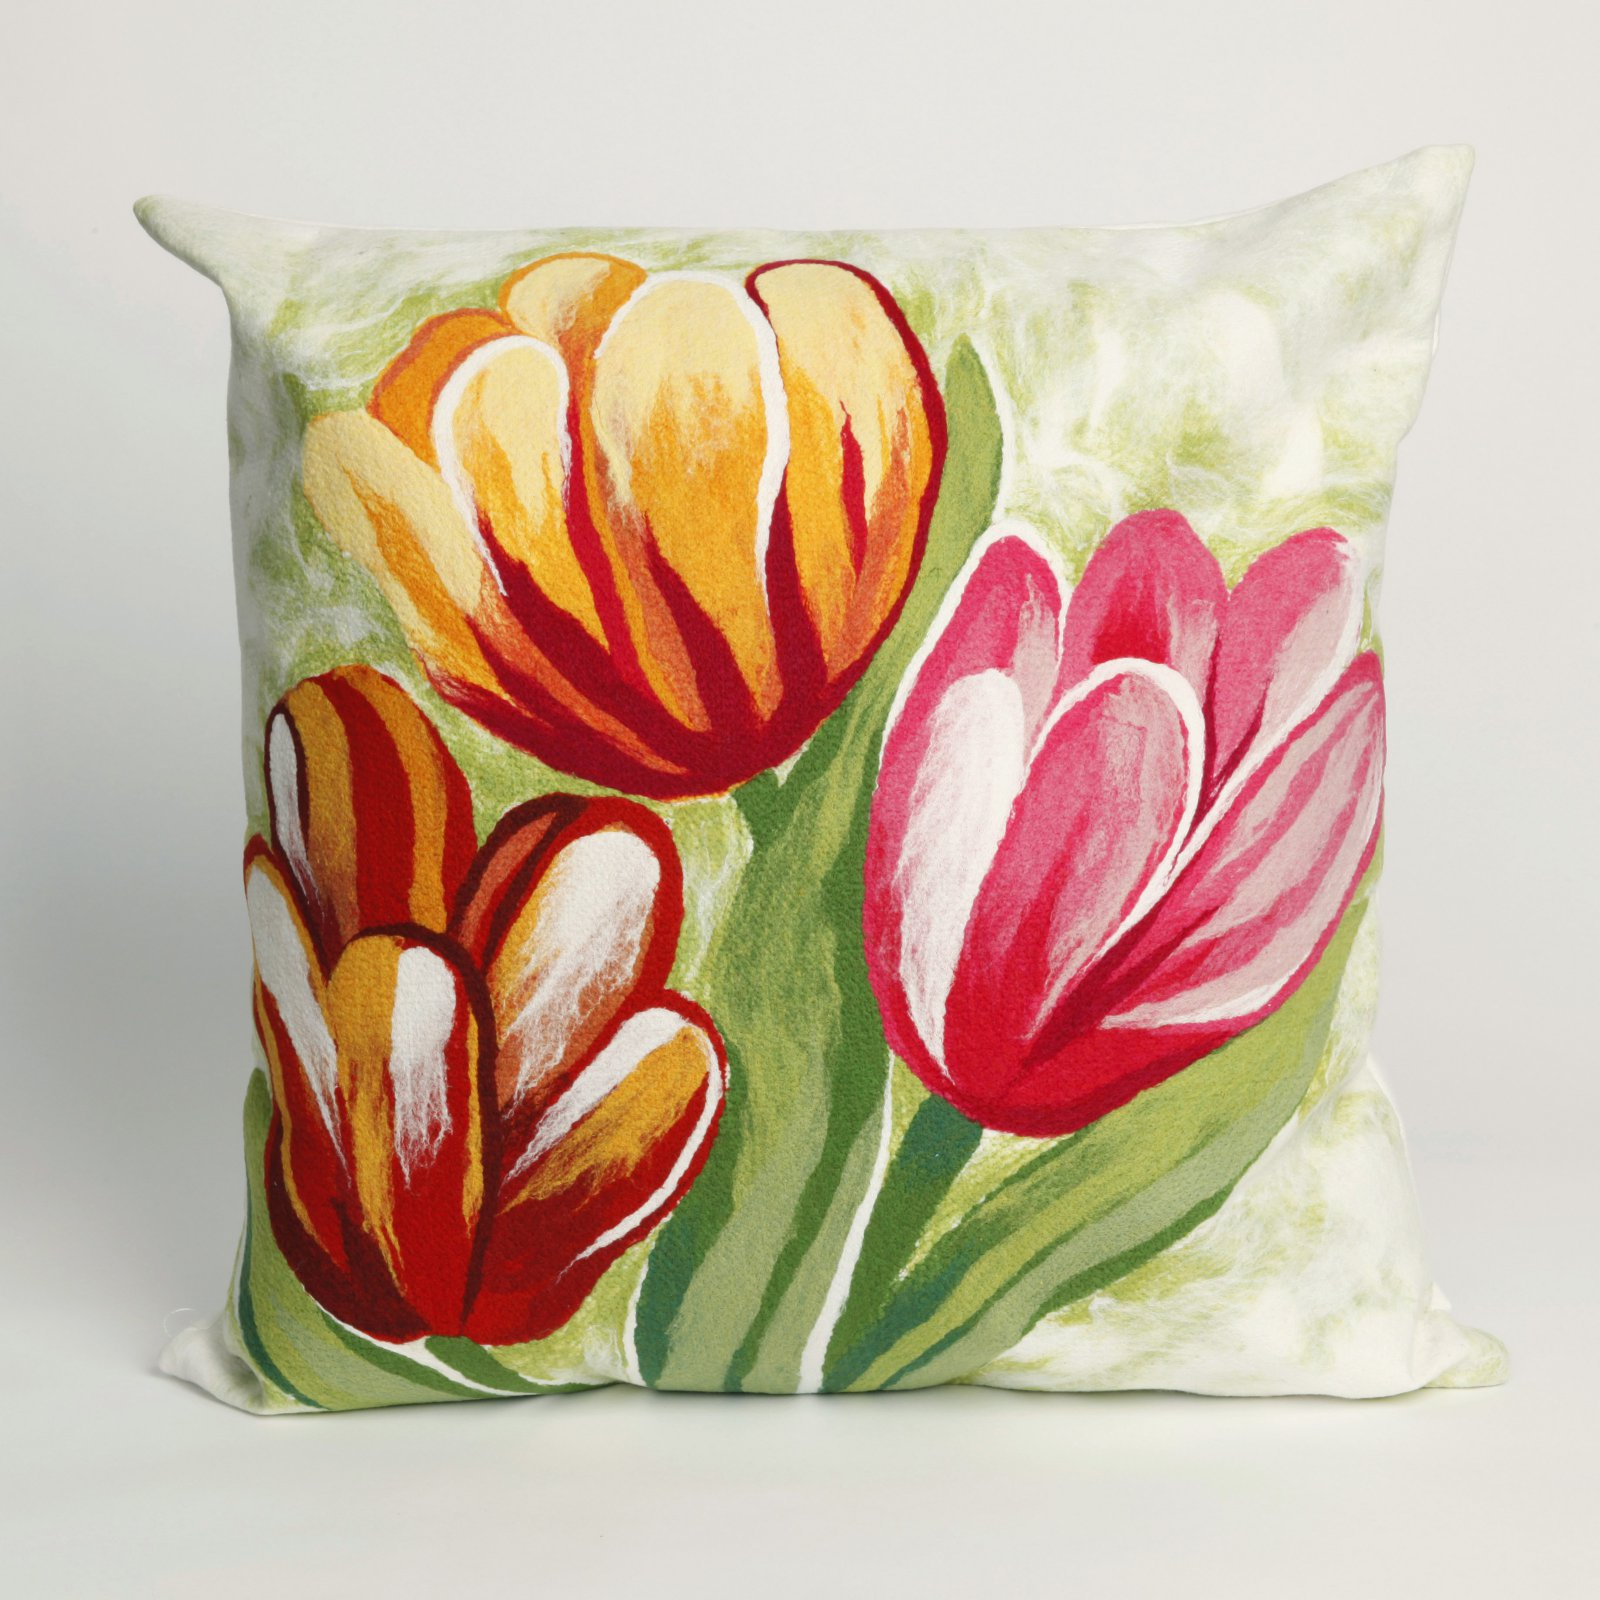 Liora Manne Tulips Indoor / Outdoor Throw Pillow